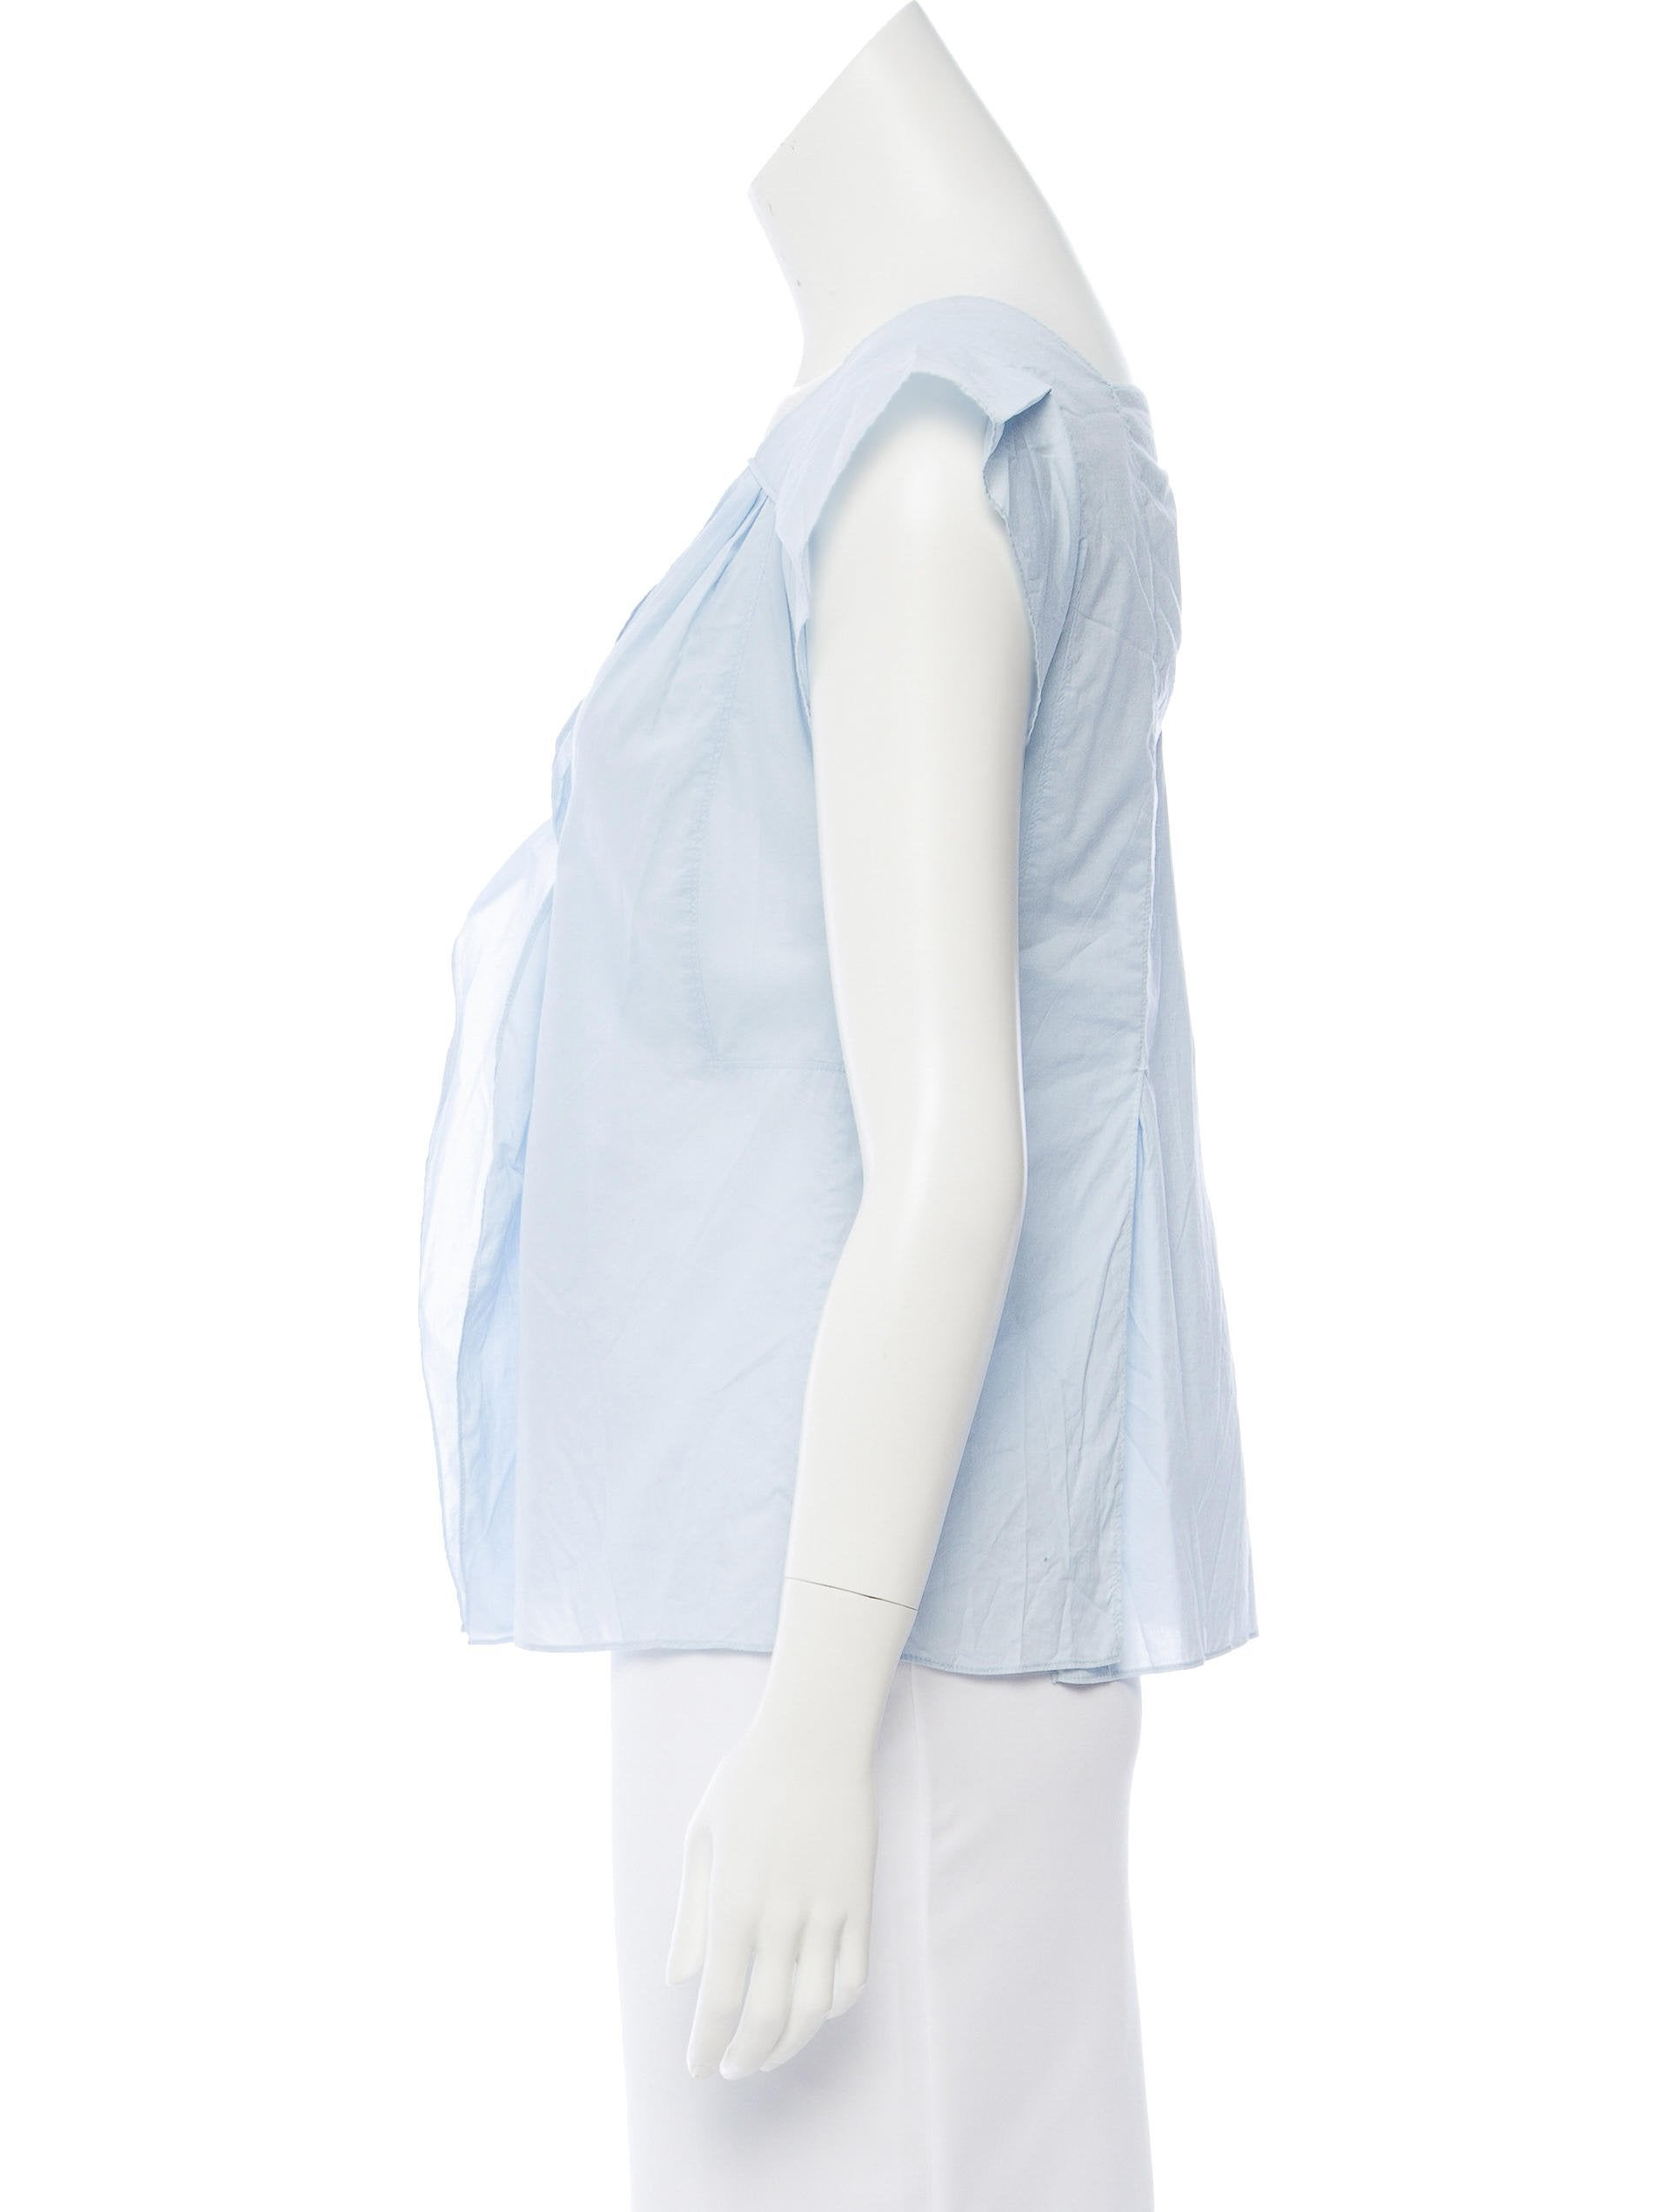 opens draped window white a en drape sleeveless drapes large blouse detail uniqlo goods new women top us off